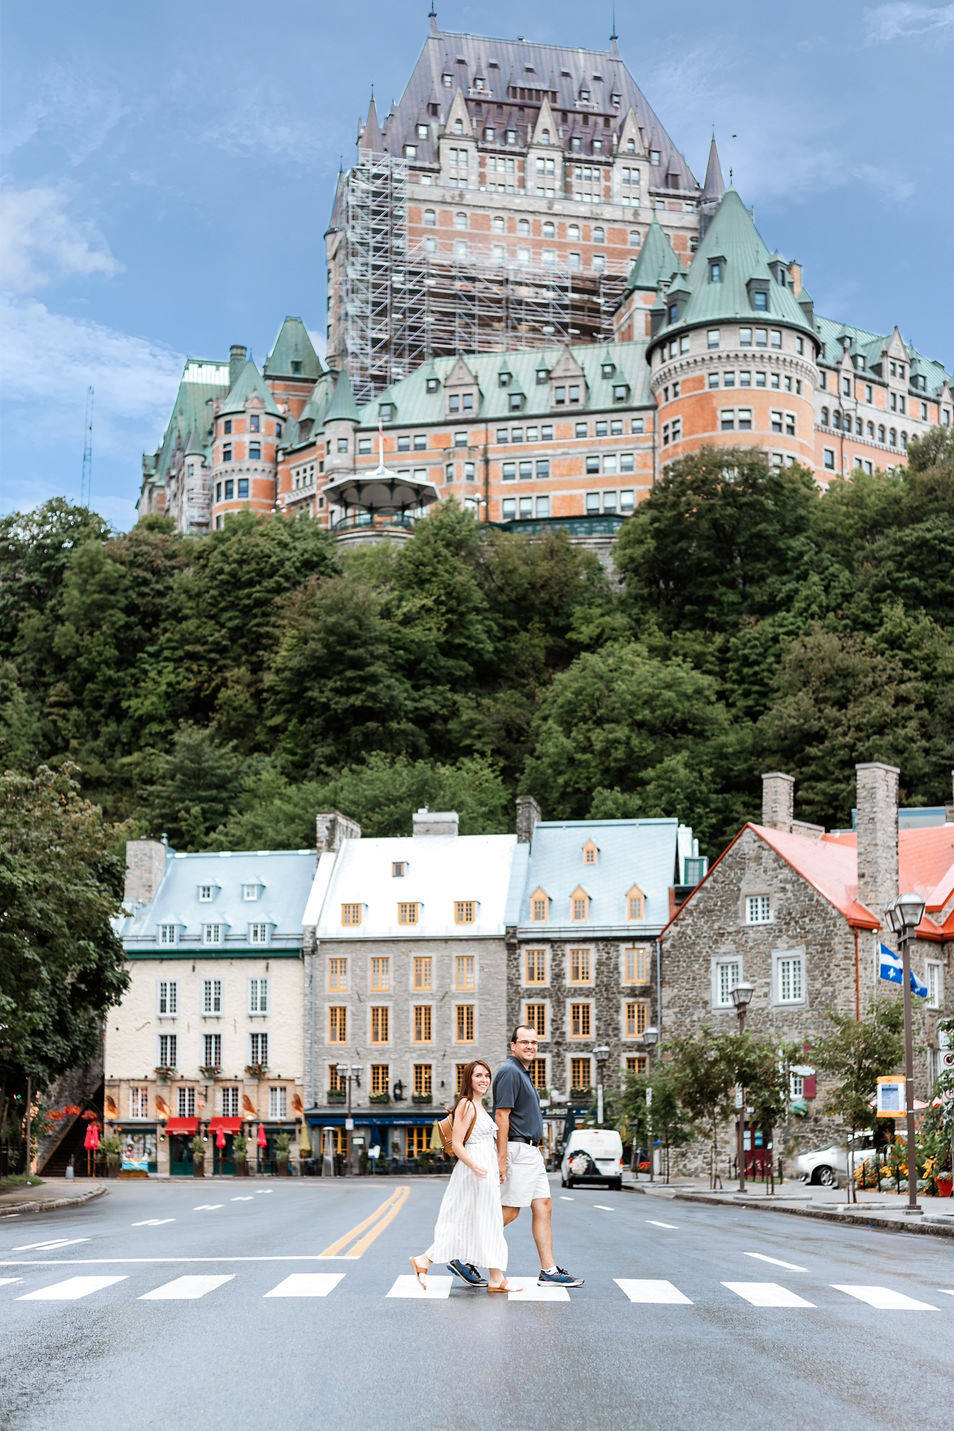 A couple crossing the street in the quartier du petit champlain of old quebec. Chateau Frontenac can be seen in the background.